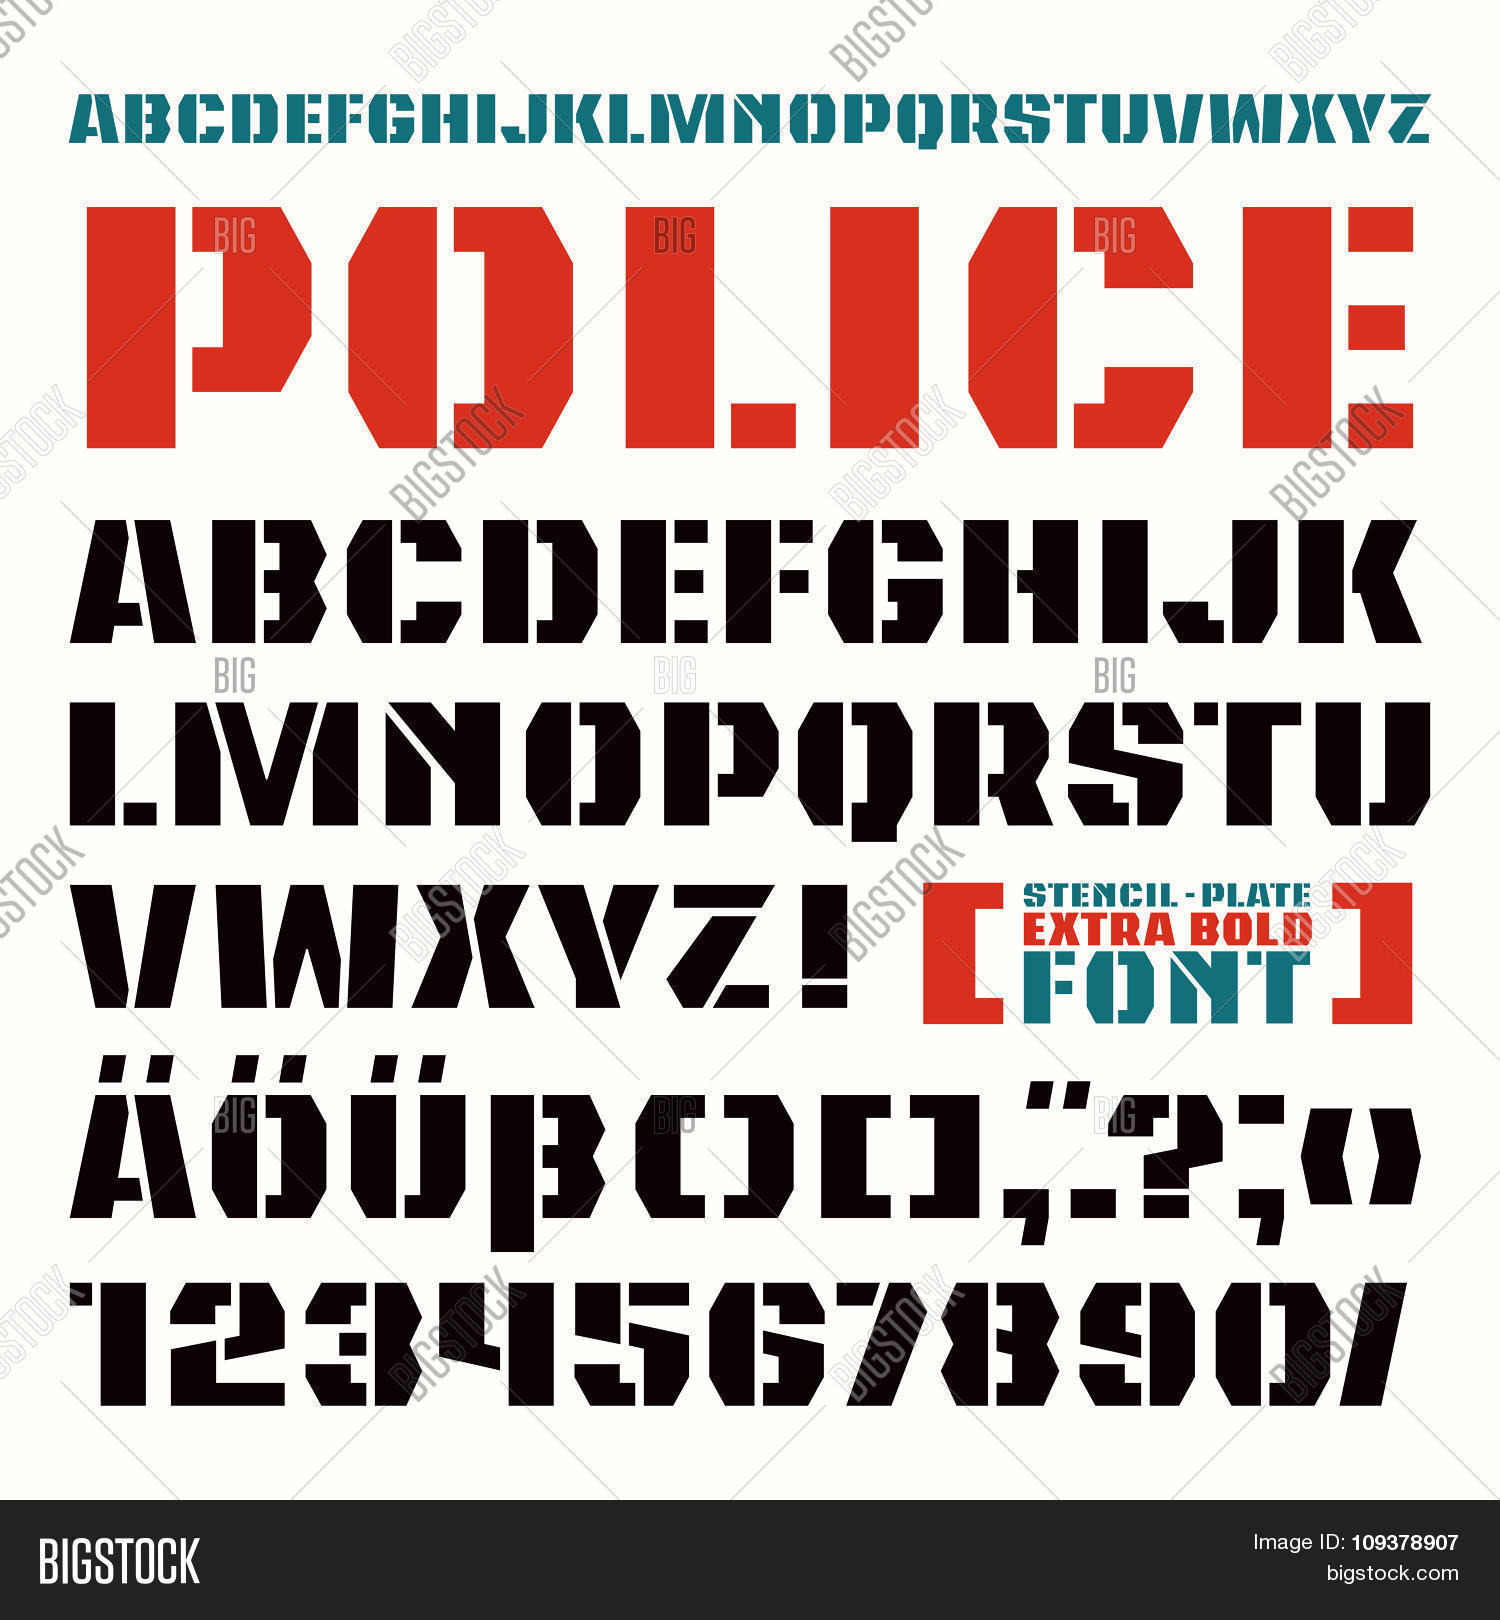 abc,alphabet,army,athletic,bold,capital,design,element,extra,font,glyph,graphically,hard,isolated,letter,masculine,military,number,numeral,police,poster,powerful,printing,retro,sanserif,scout,sing,stencil-plate,strong,style,symbol,type,typeface,typescript,typeset,typographic,umlaut,uppercase,urban,vector